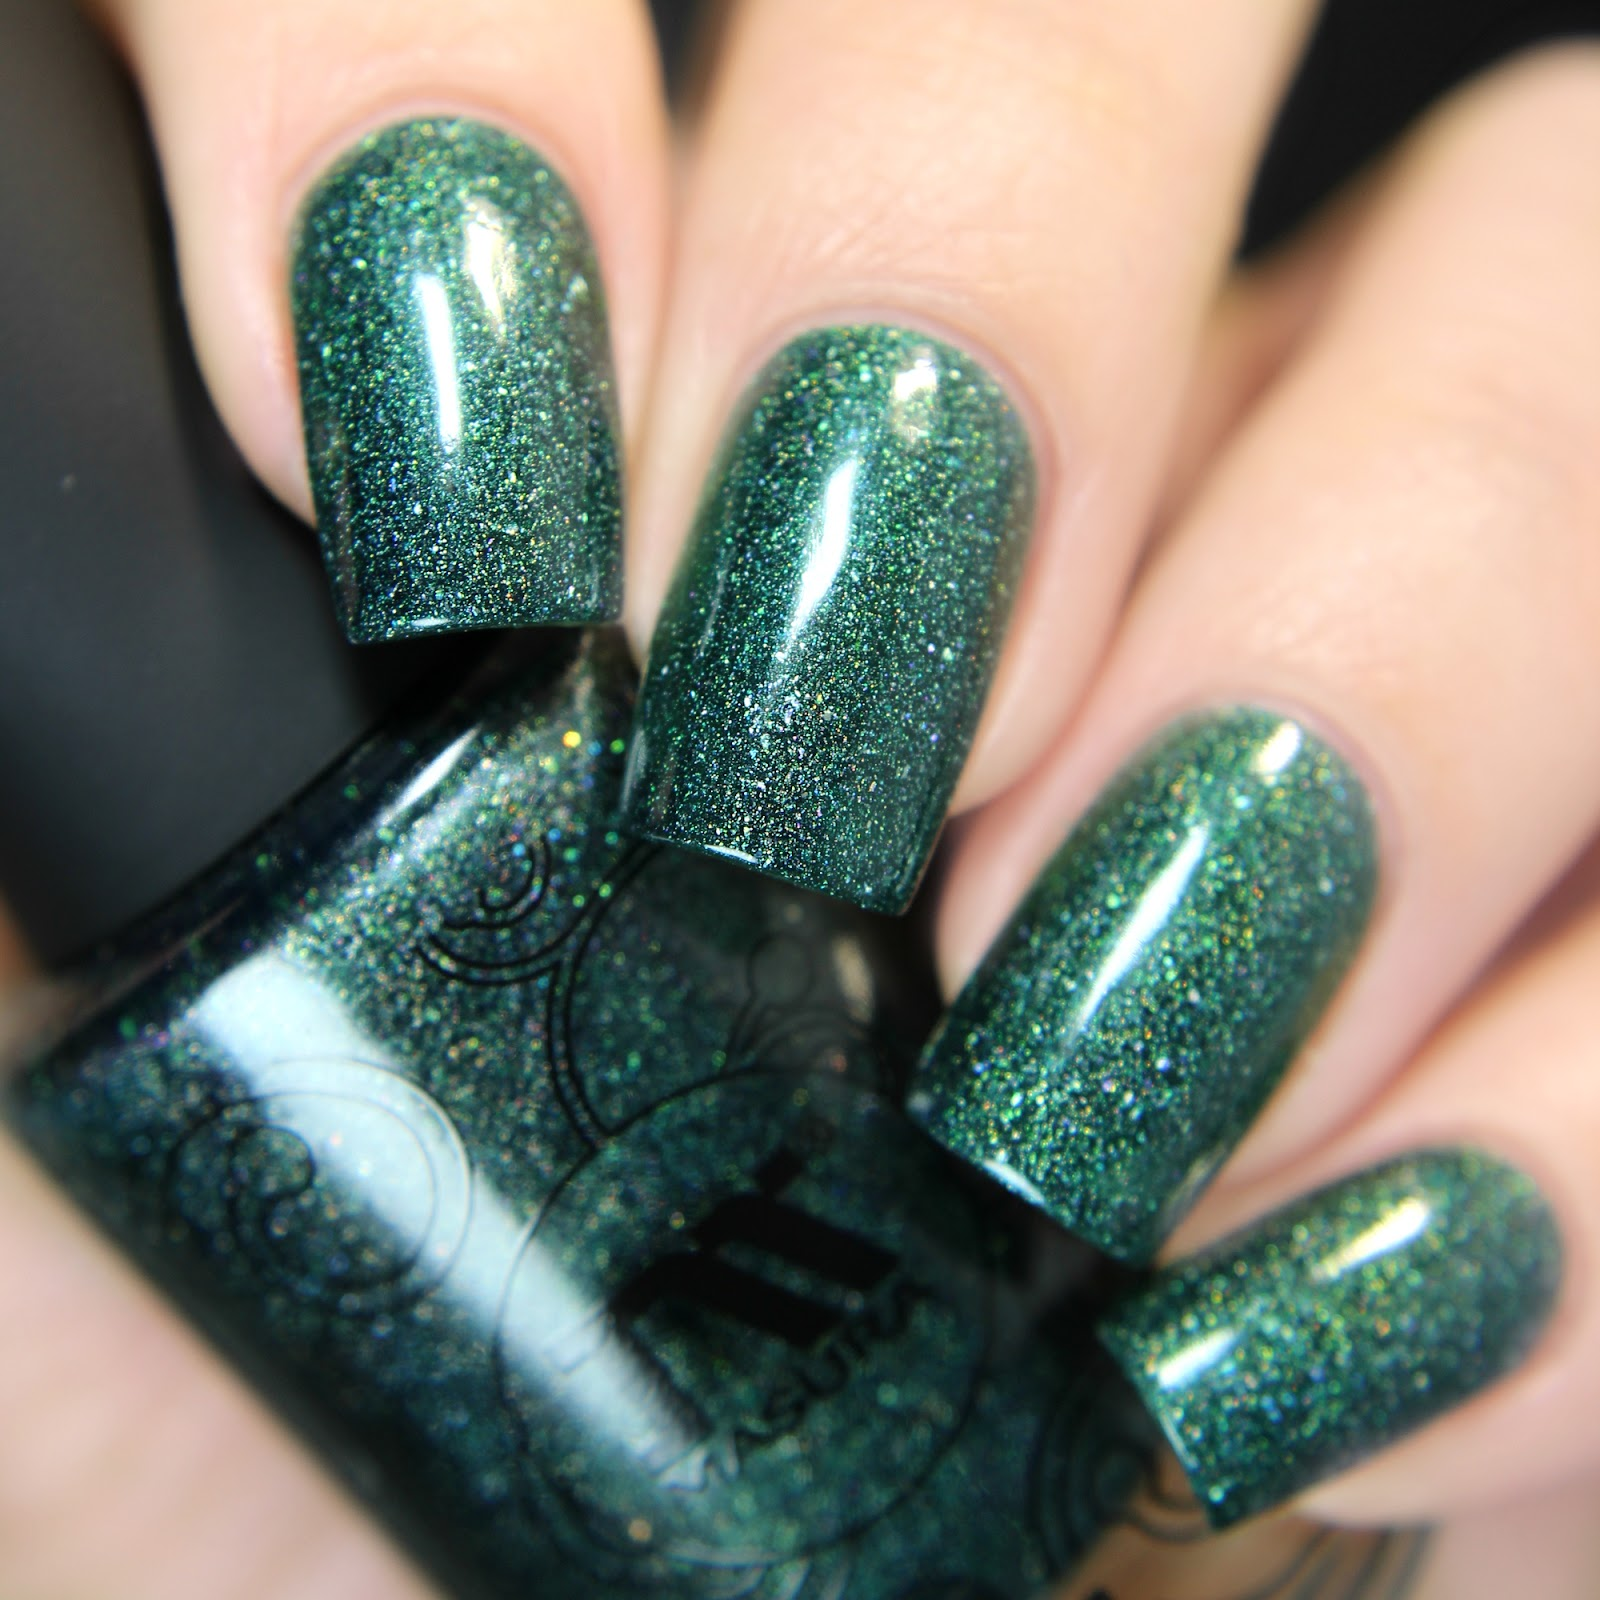 Masura nail polishes from Polishmolish.ru ~ Glitterfingersss in english